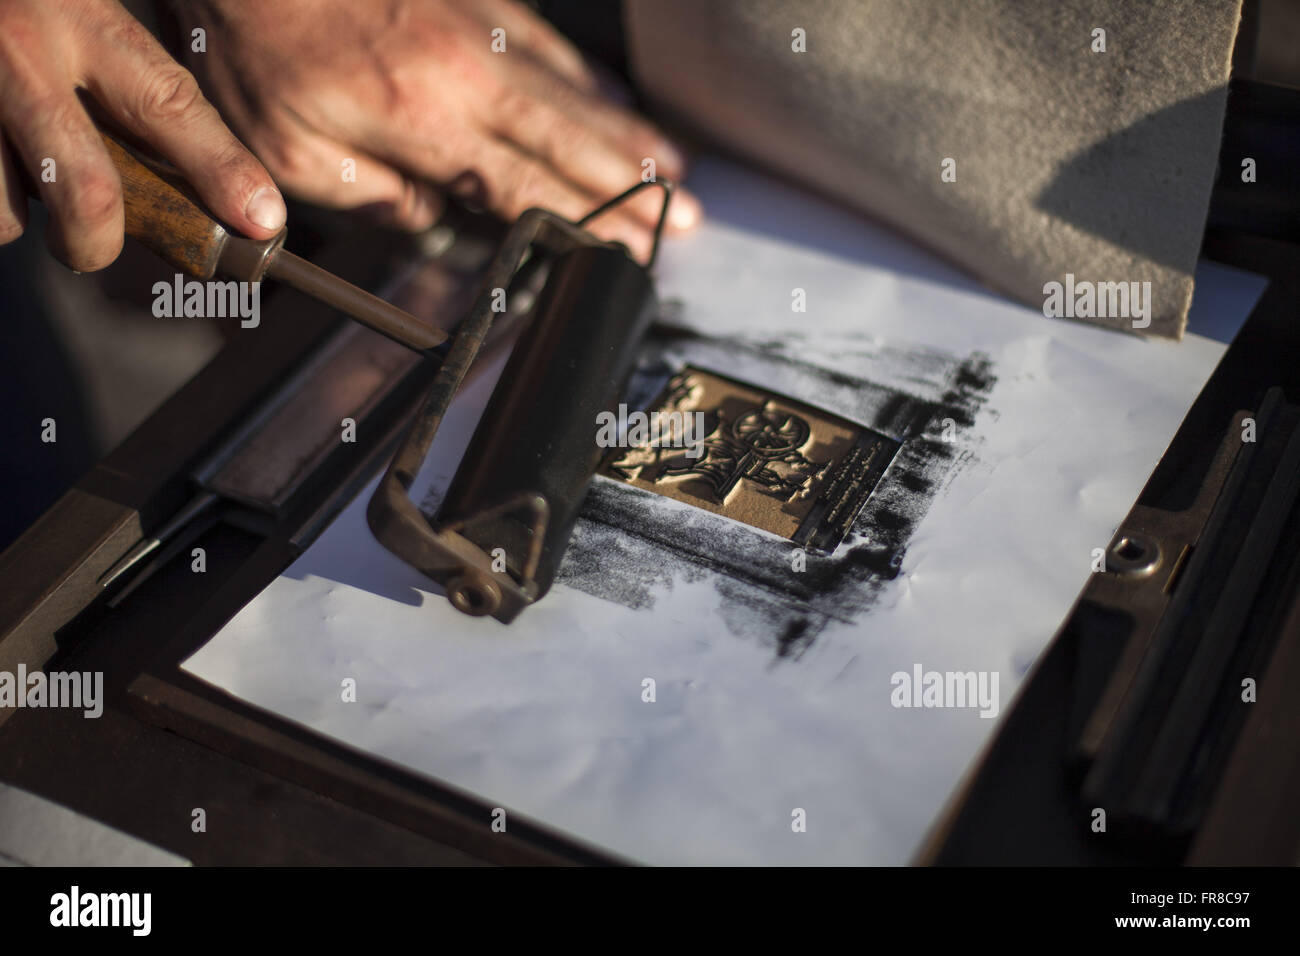 Working with woodcut on paper street artist - Stock Image